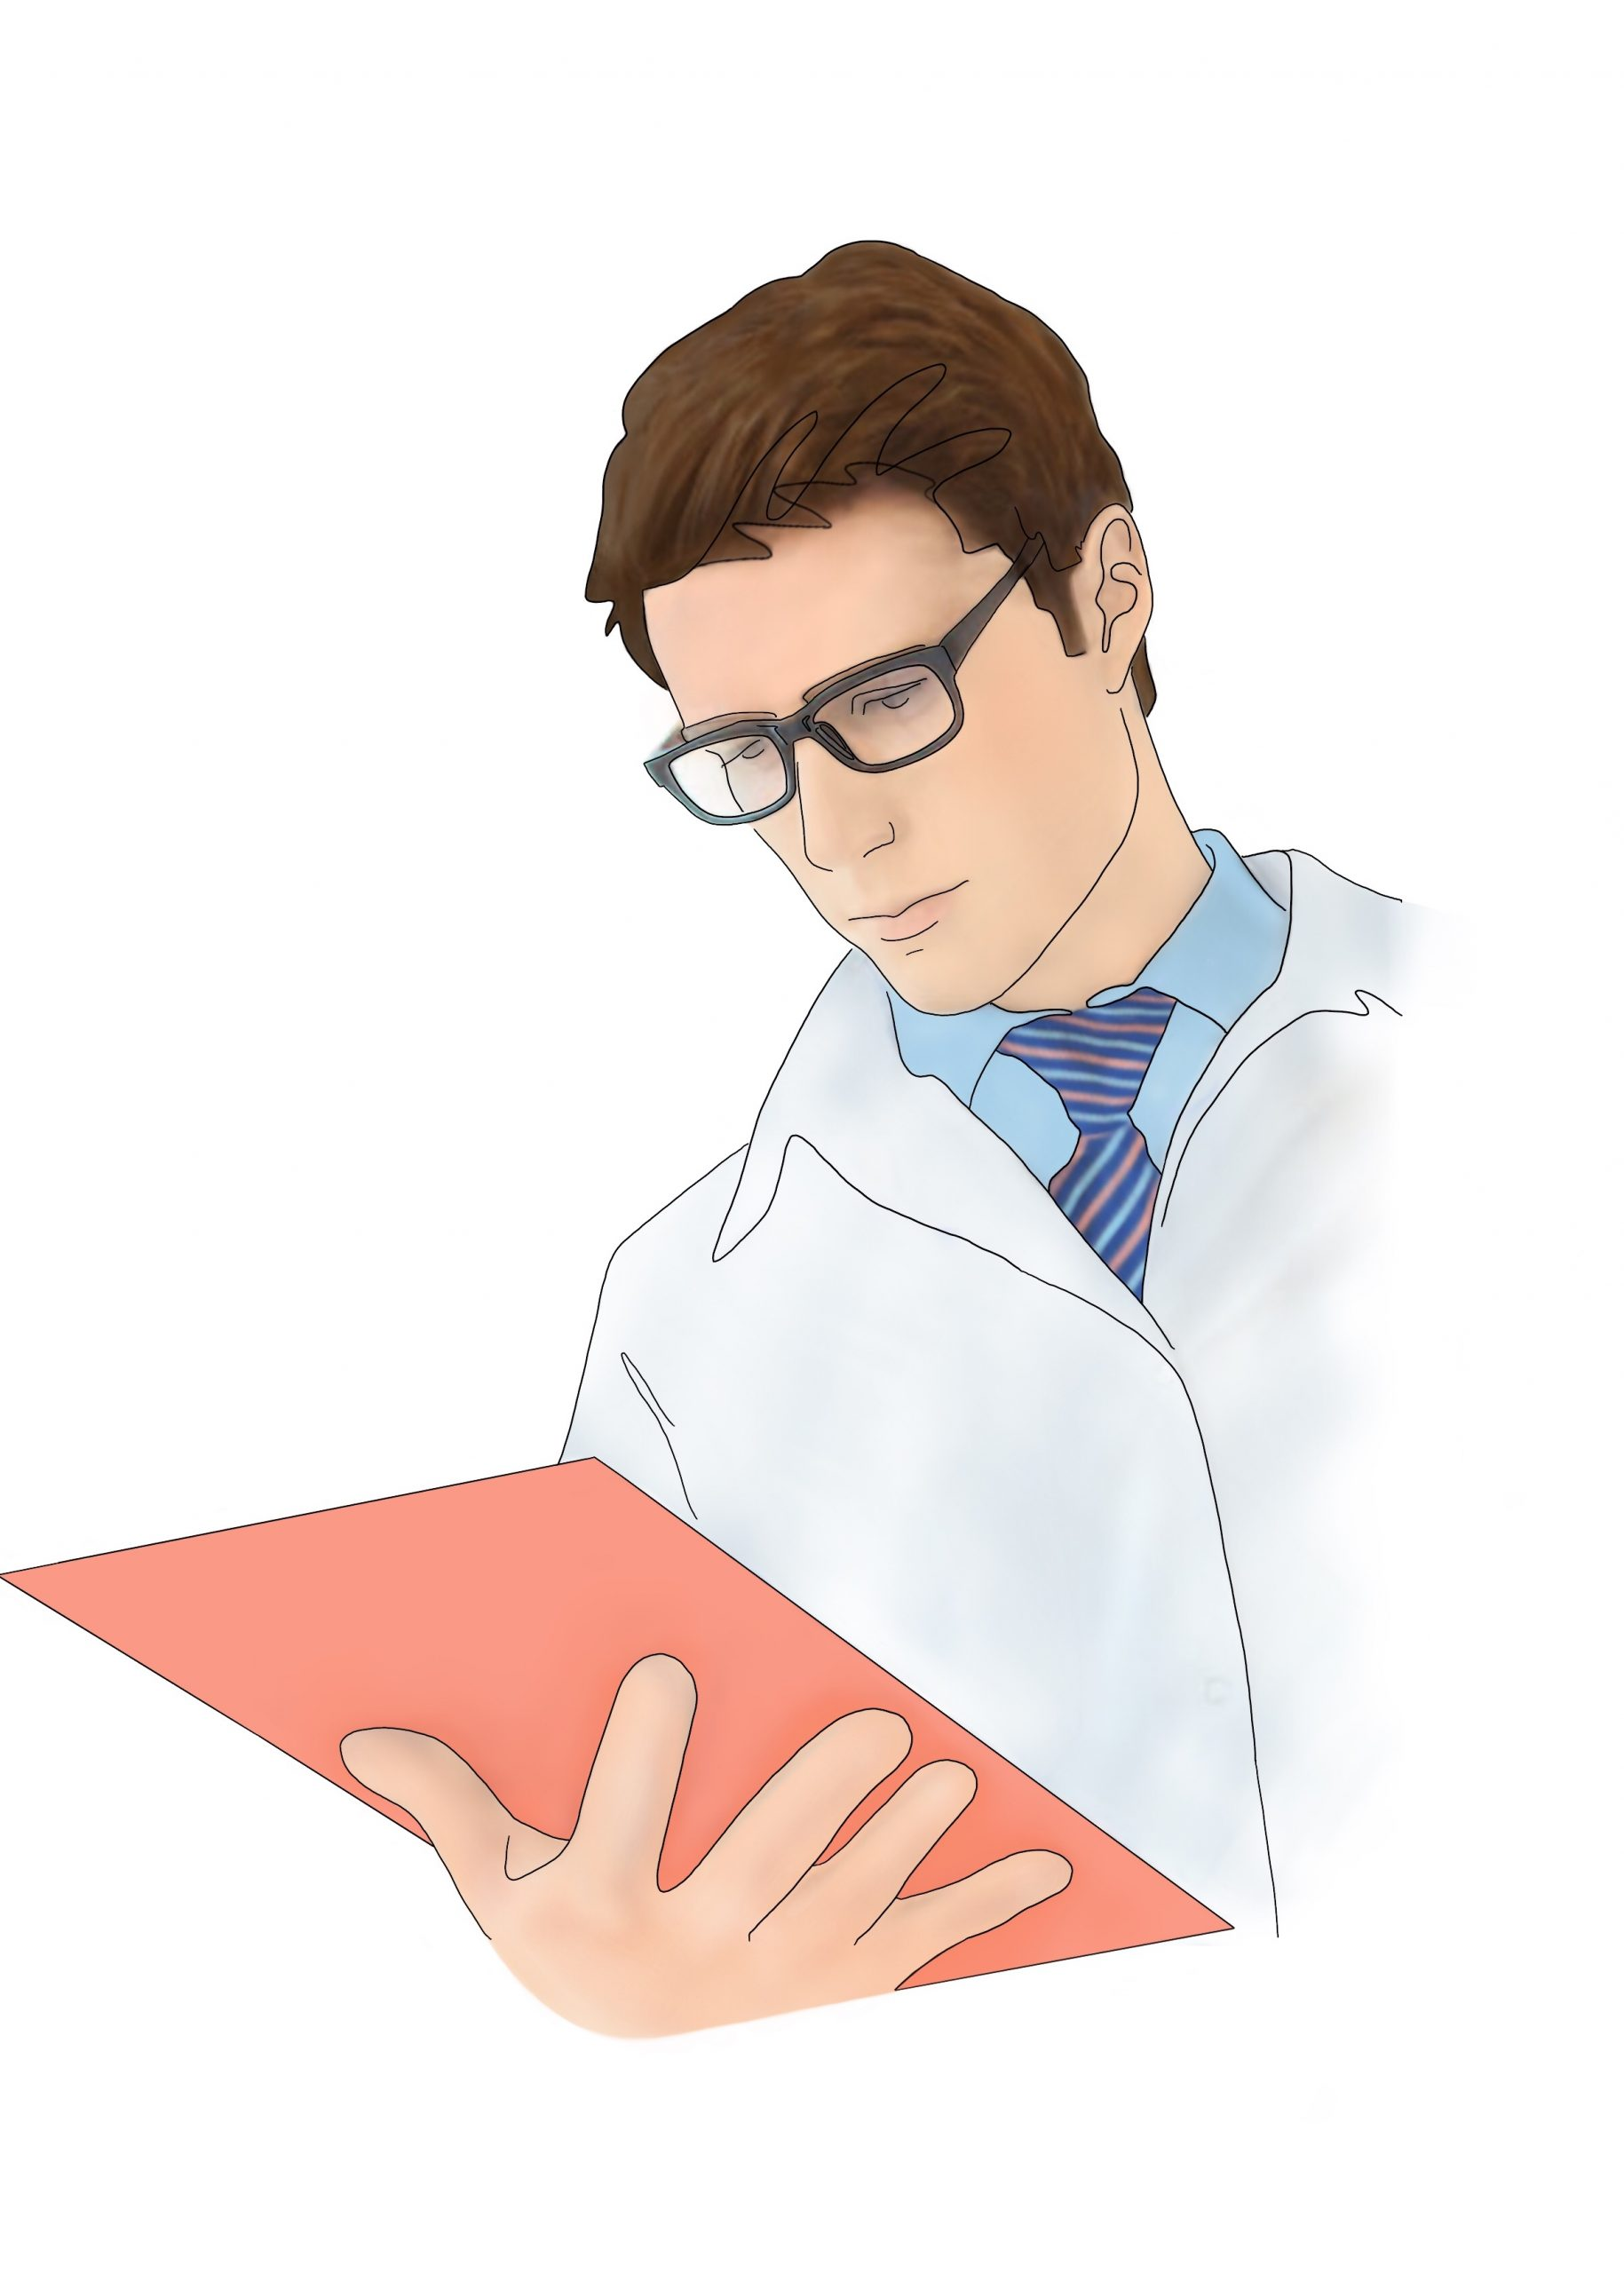 A drawing of a medical provider reviewing diagnostic sleep test results